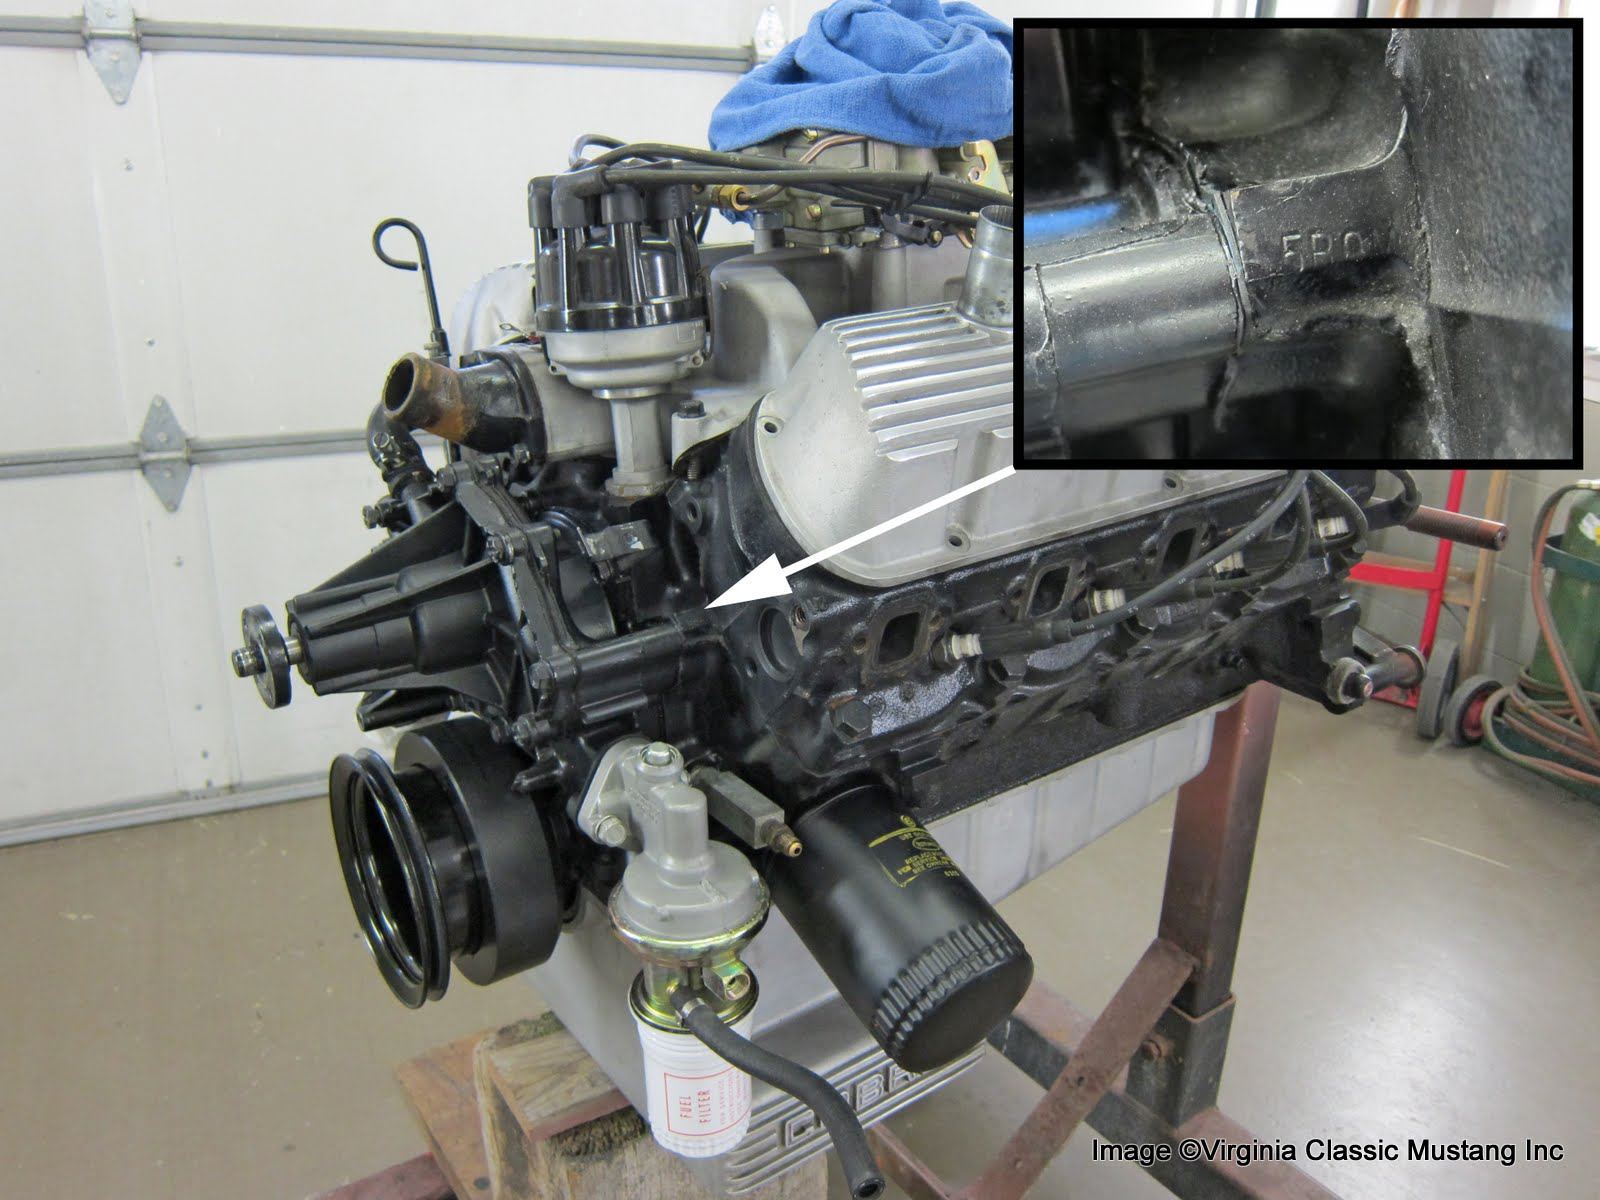 virginia classic mustang blog just the details 289 engine date the engine assembly date is stamped on the pad in front of the lh cylinder head this date would always be later than the casting date of the engine block